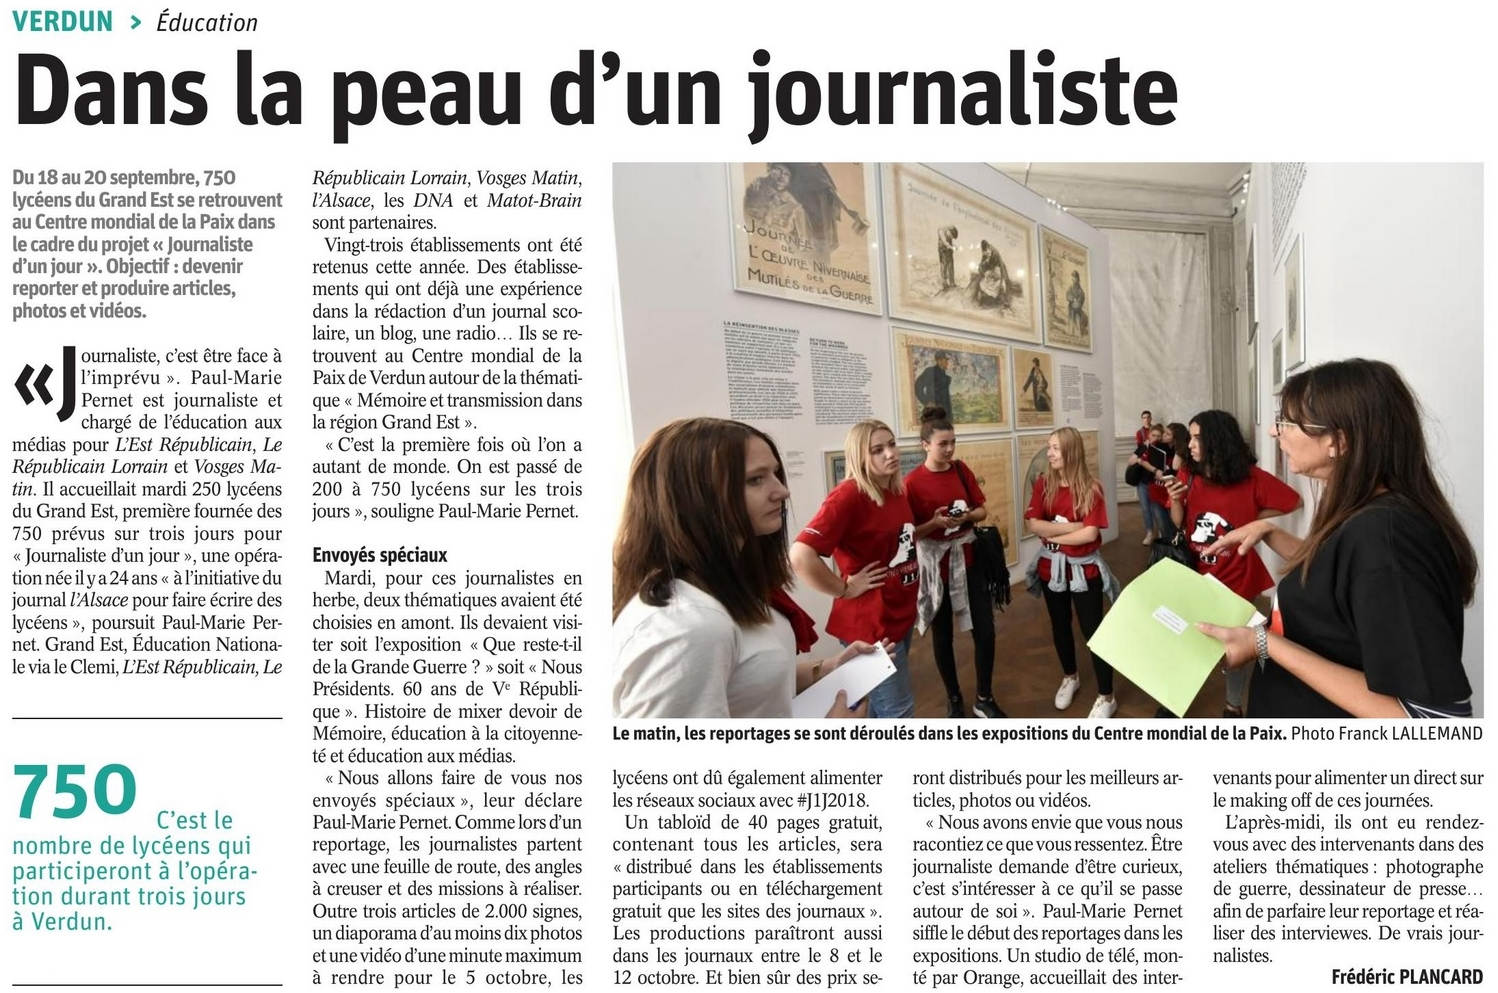 article [19-09-2018]VERDUN Journaliste.jpg